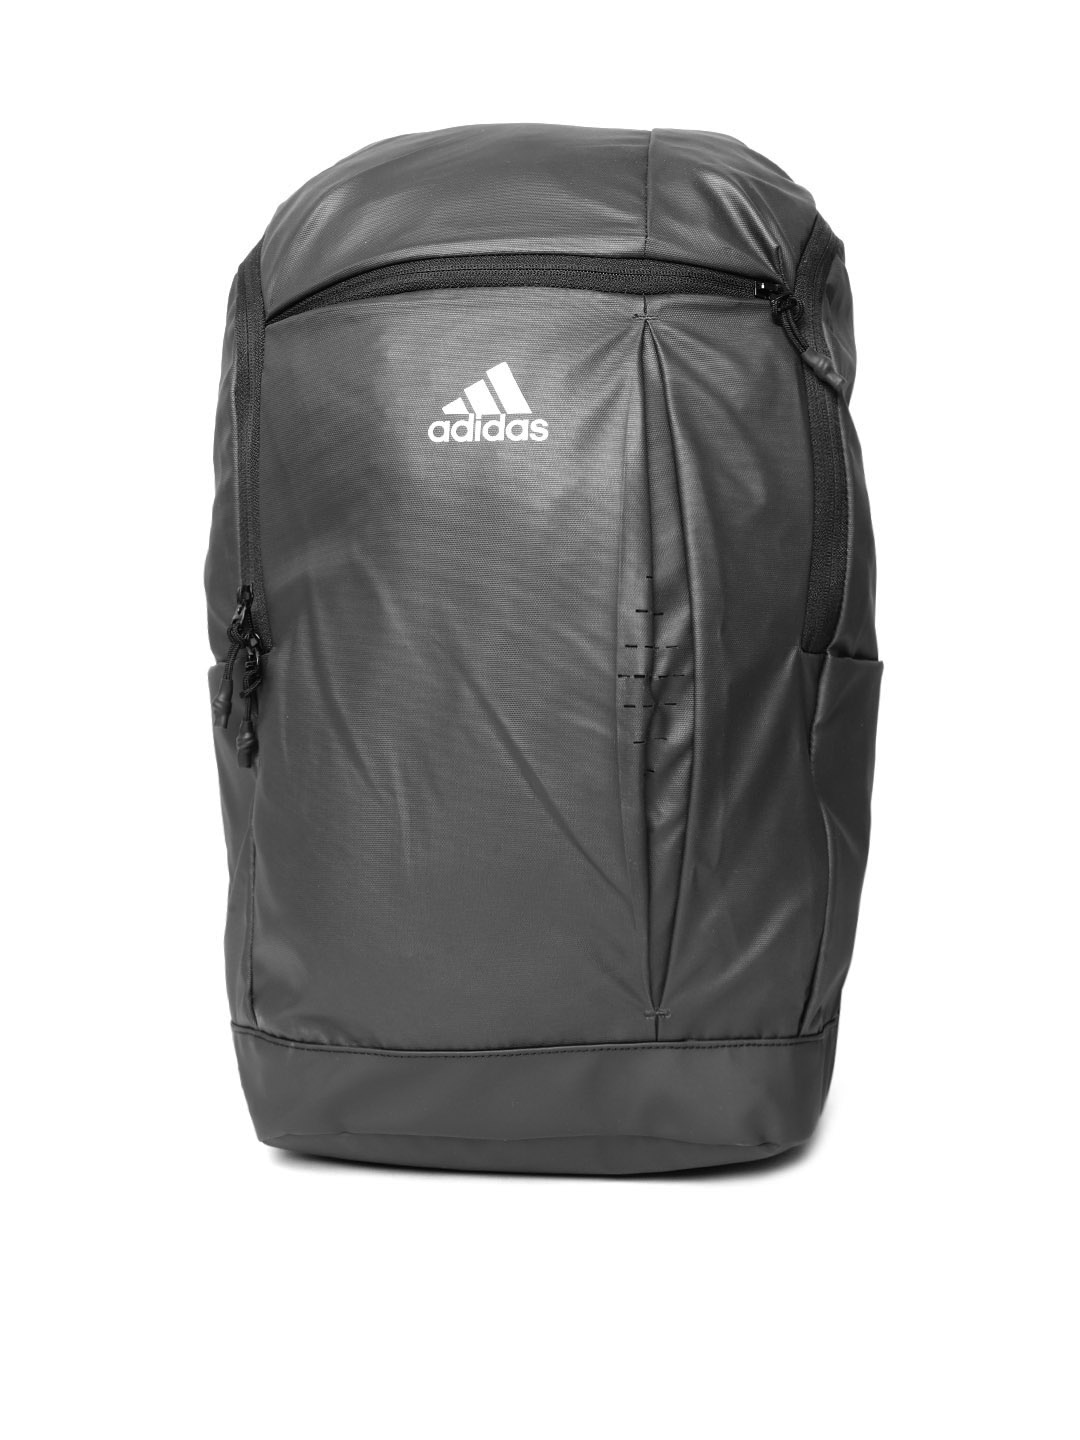 Buy ADIDAS Unisex Olive Green   Black FS Better Backpack - Backpacks ... 467dc6875ebec